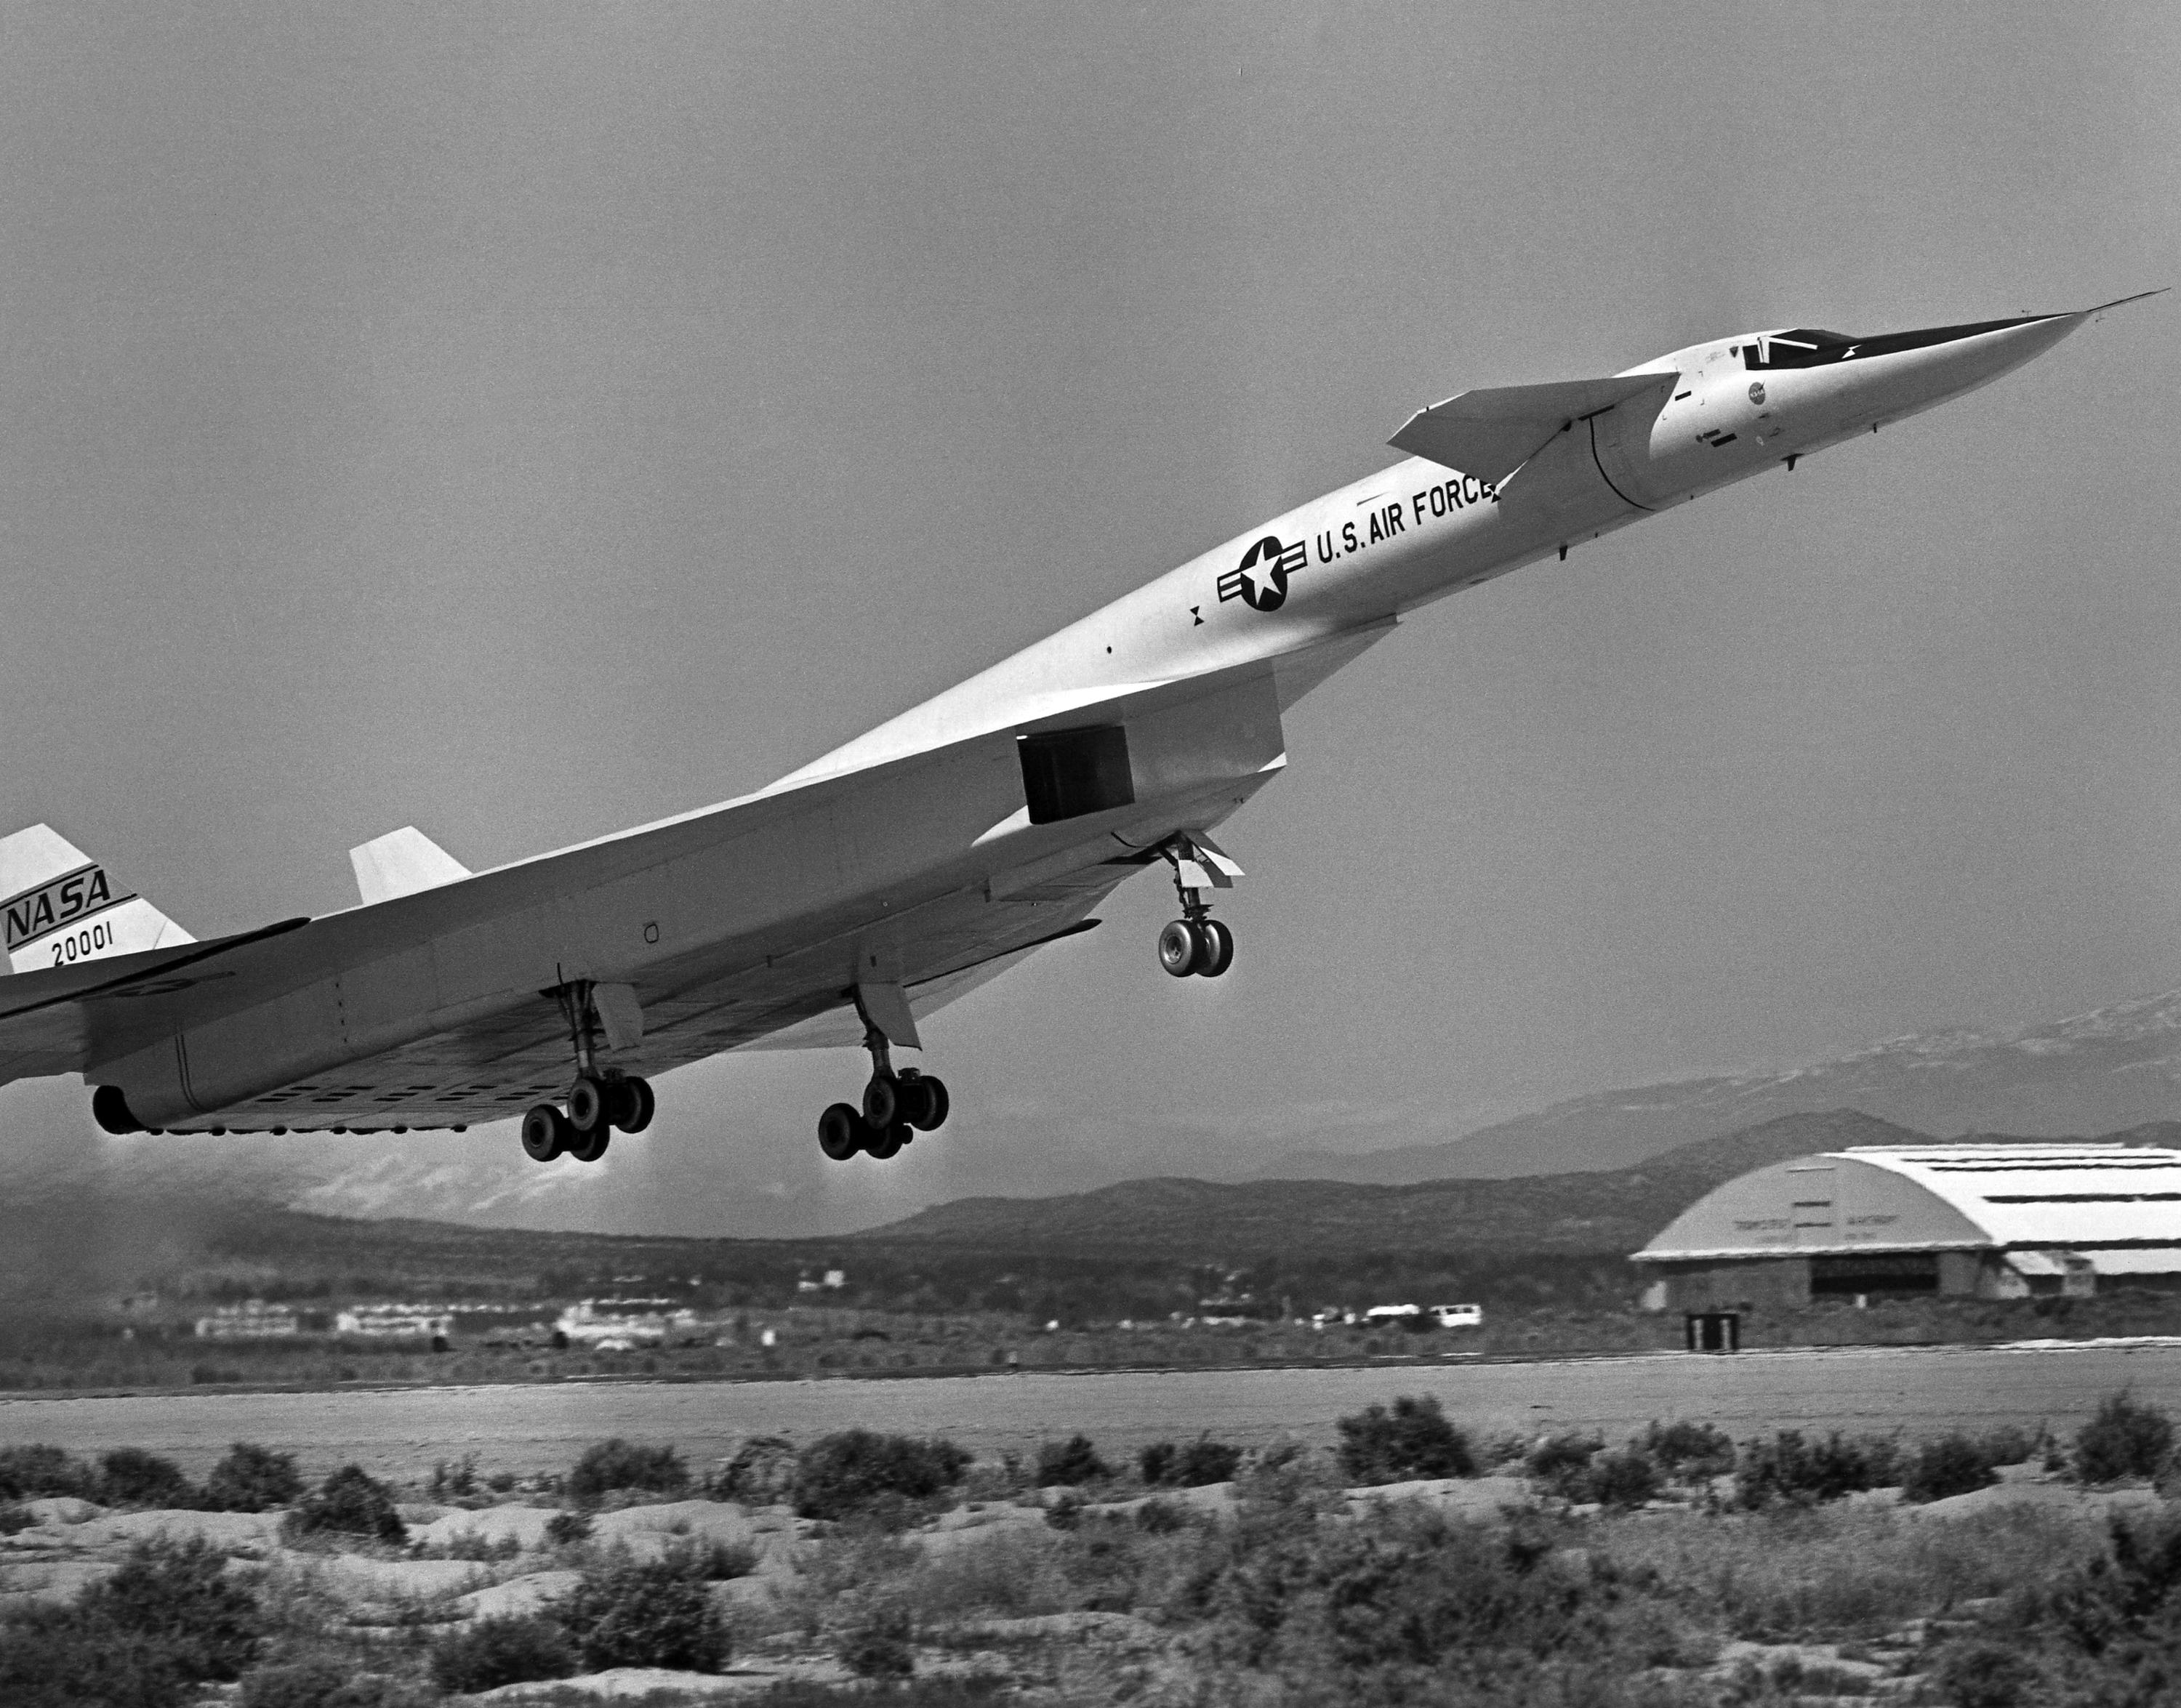 1967 nasa aircraft - photo #4